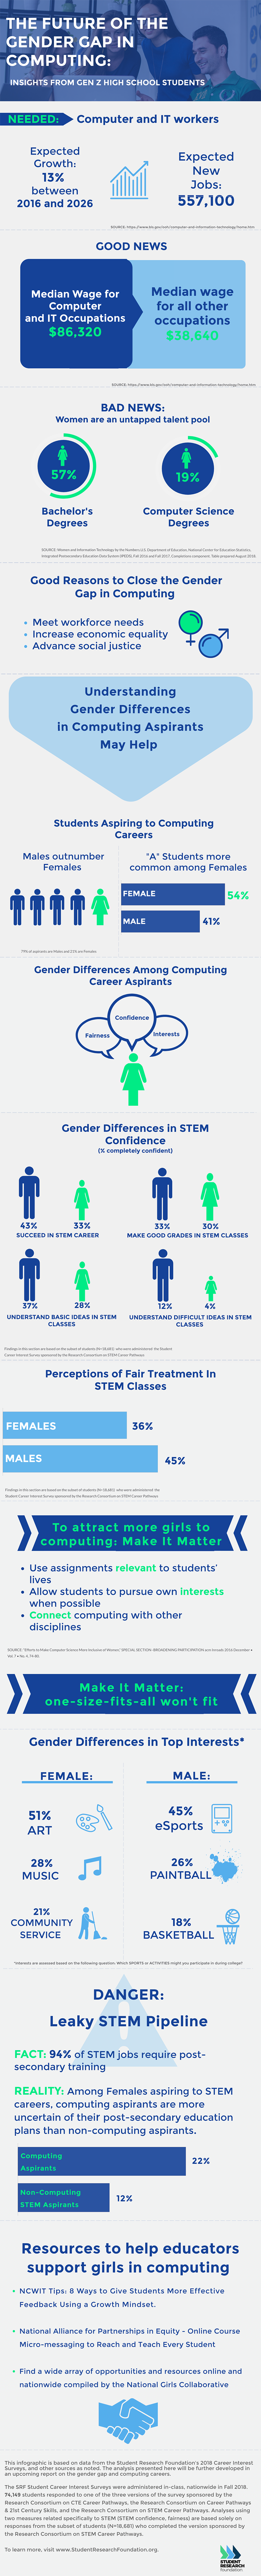 Females and STEM - Student Research Foundatinon